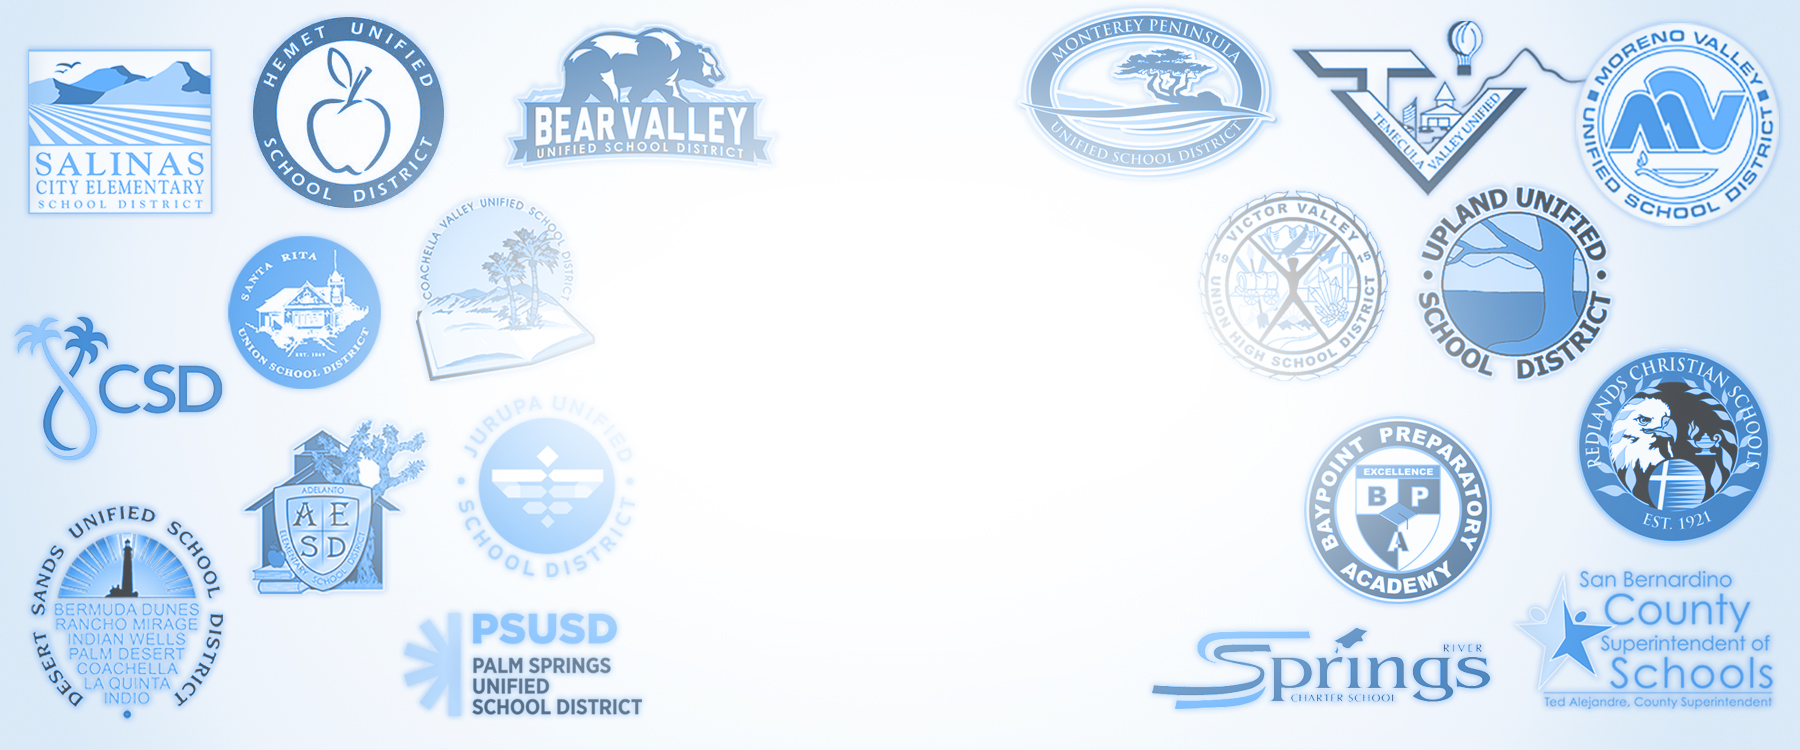 a large emblem with school districts that are in the Riverside County